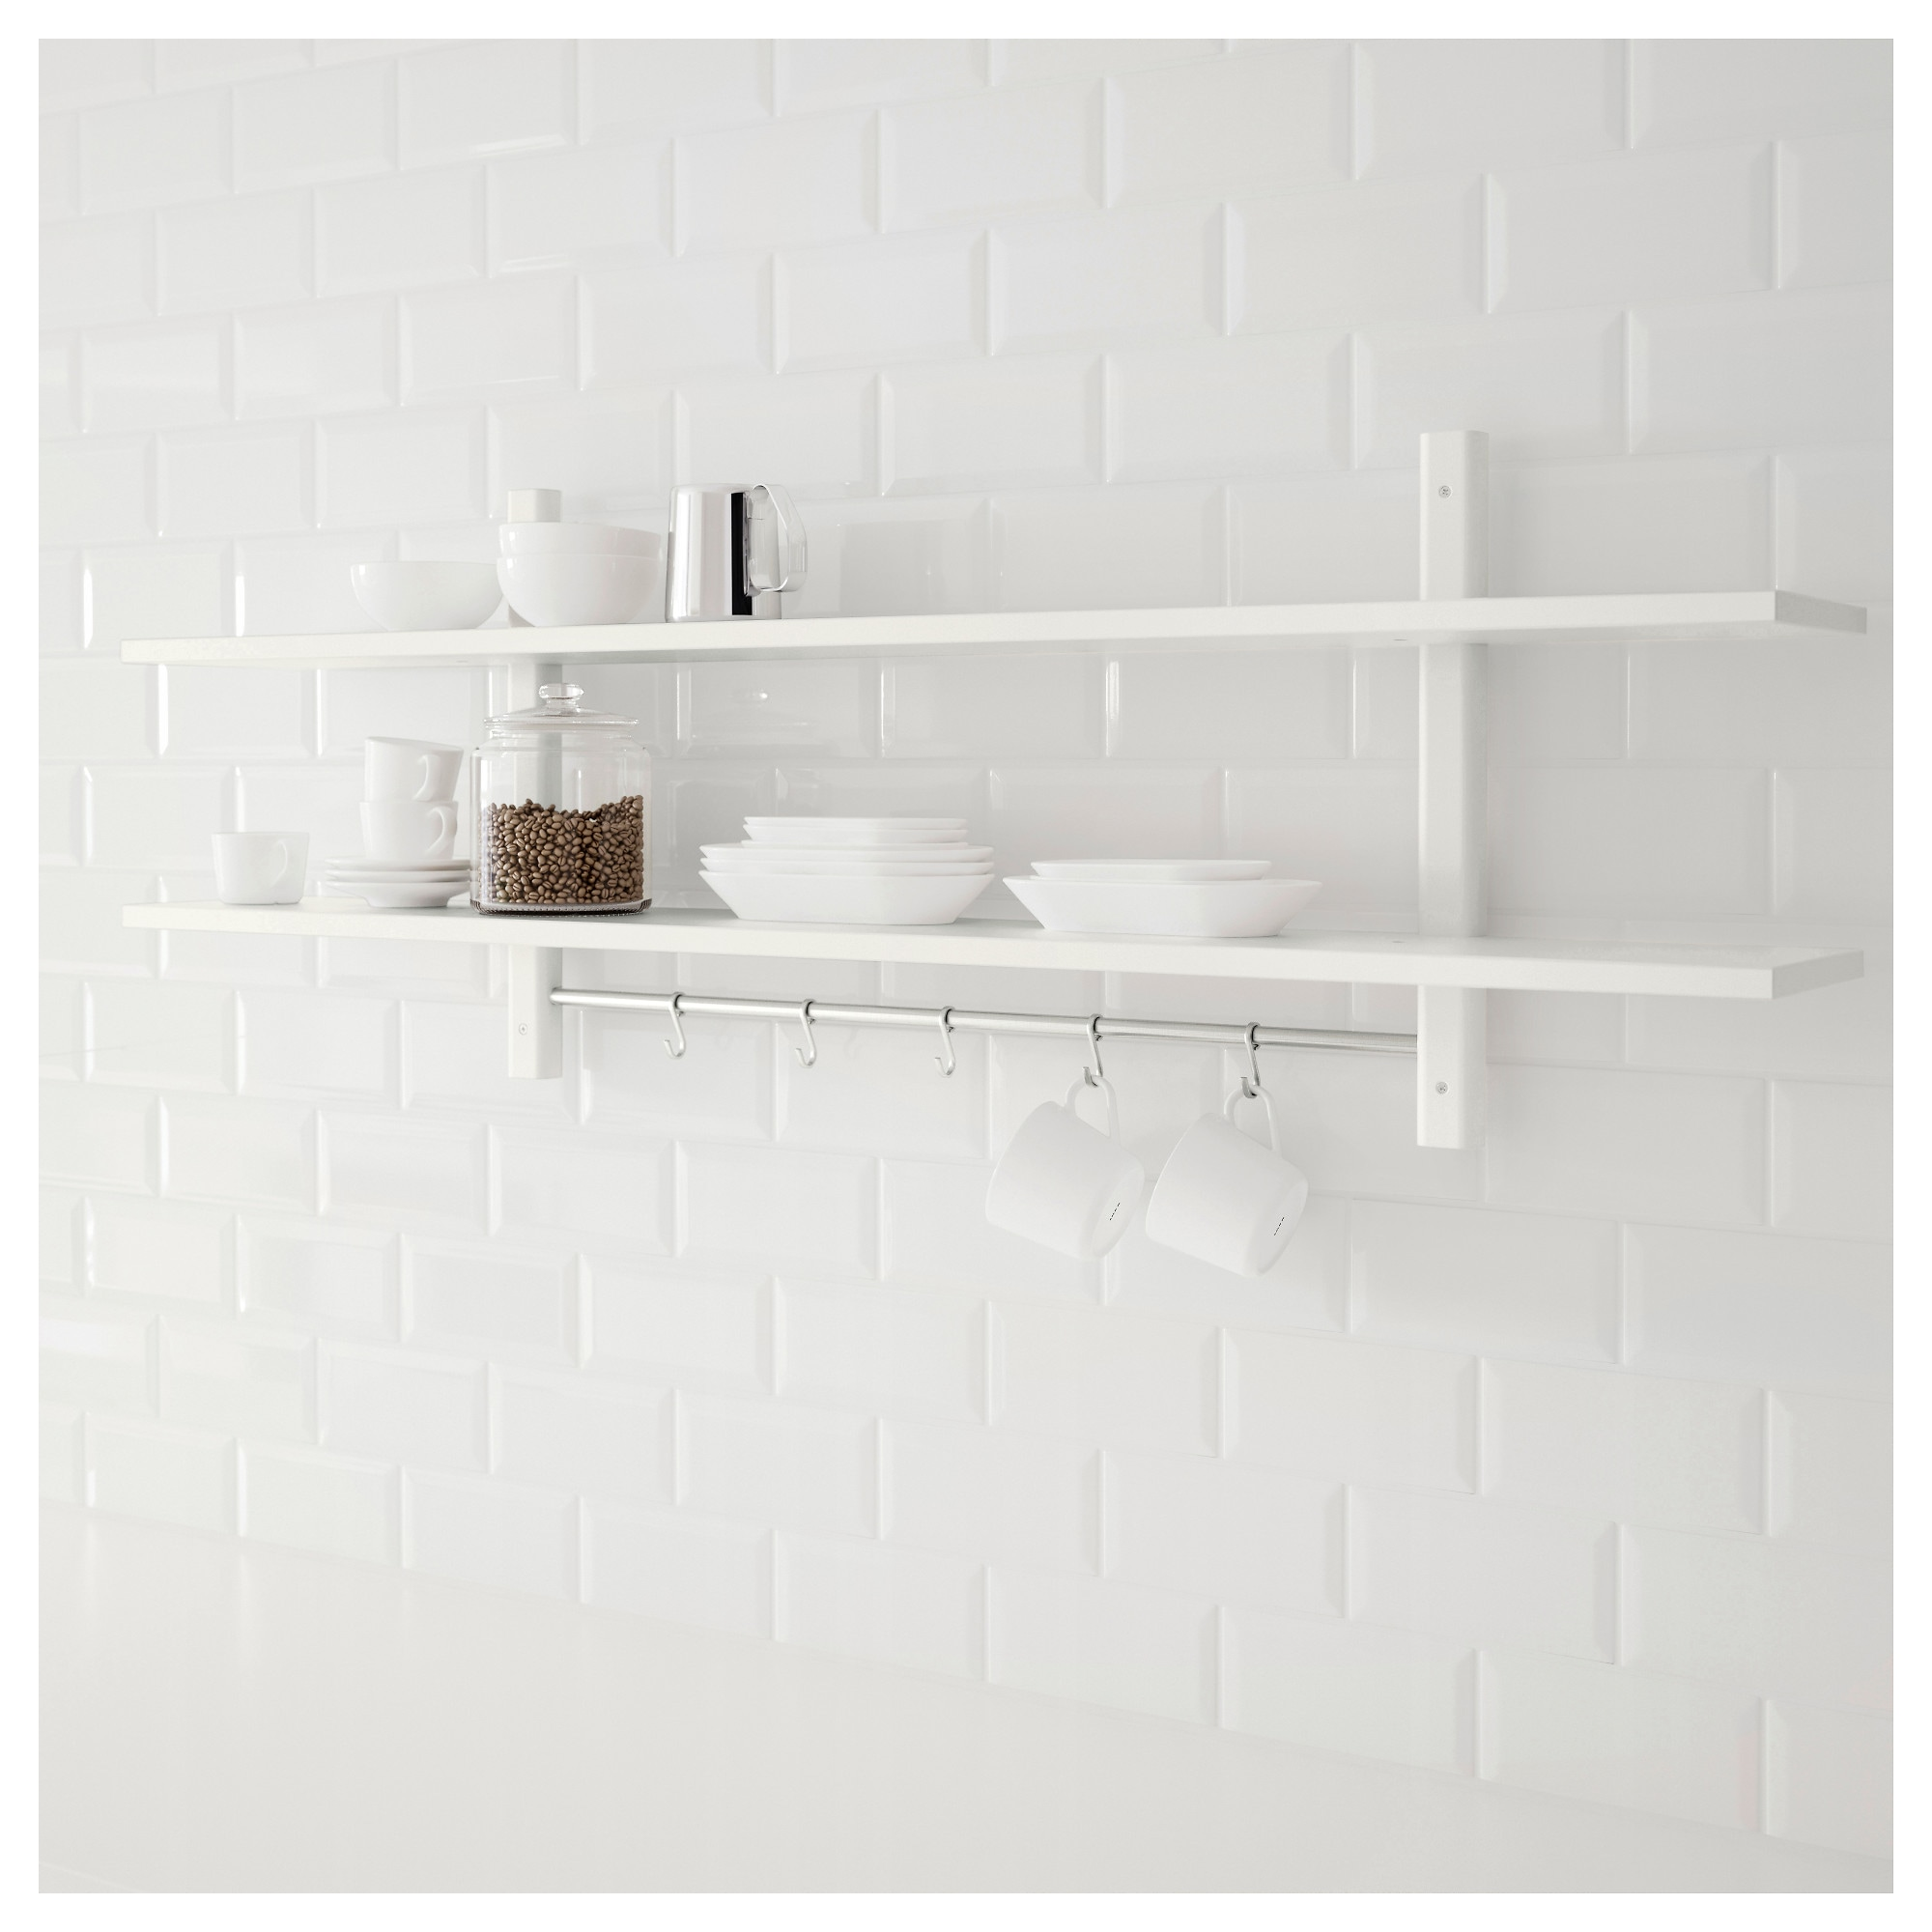 hook shelf hooks regard rack mounted coat with sizing wall to x